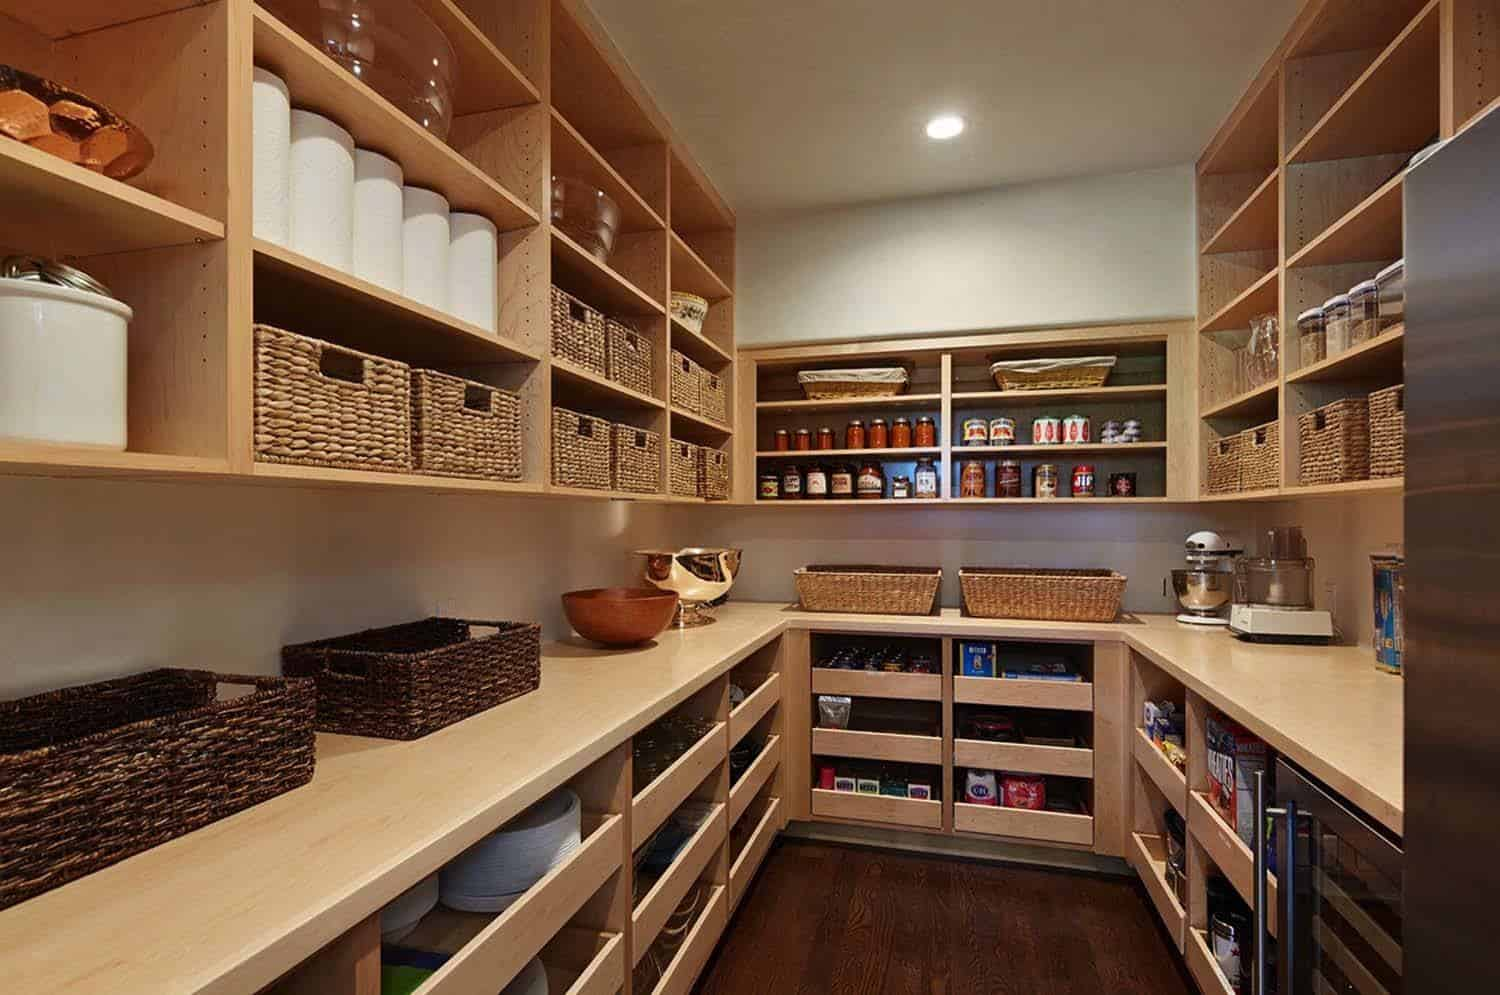 Design Pantry Ideas 35 clever ideas to help organize your kitchen pantry 19 1 kindesign